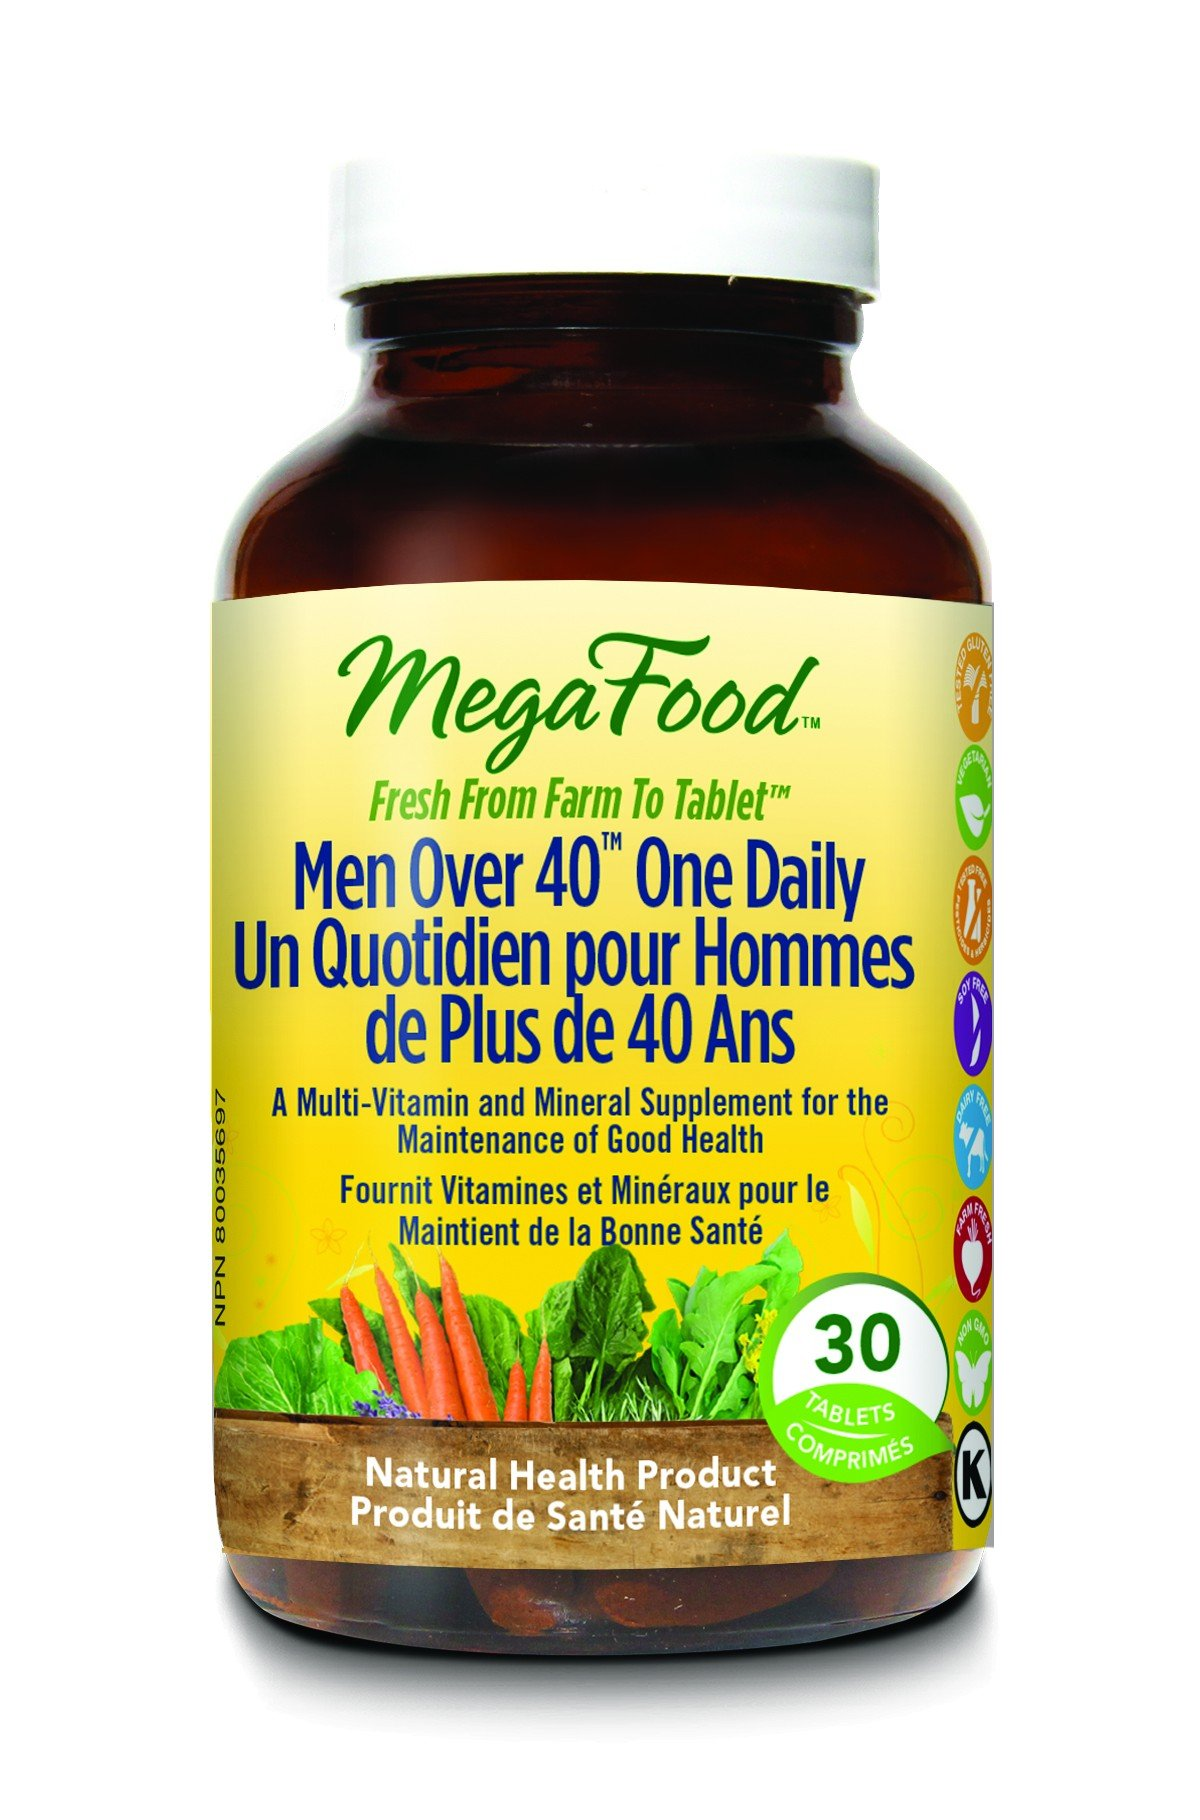 MegaFood Men Over 40 One Daily One Daily: A Man's Good Friend